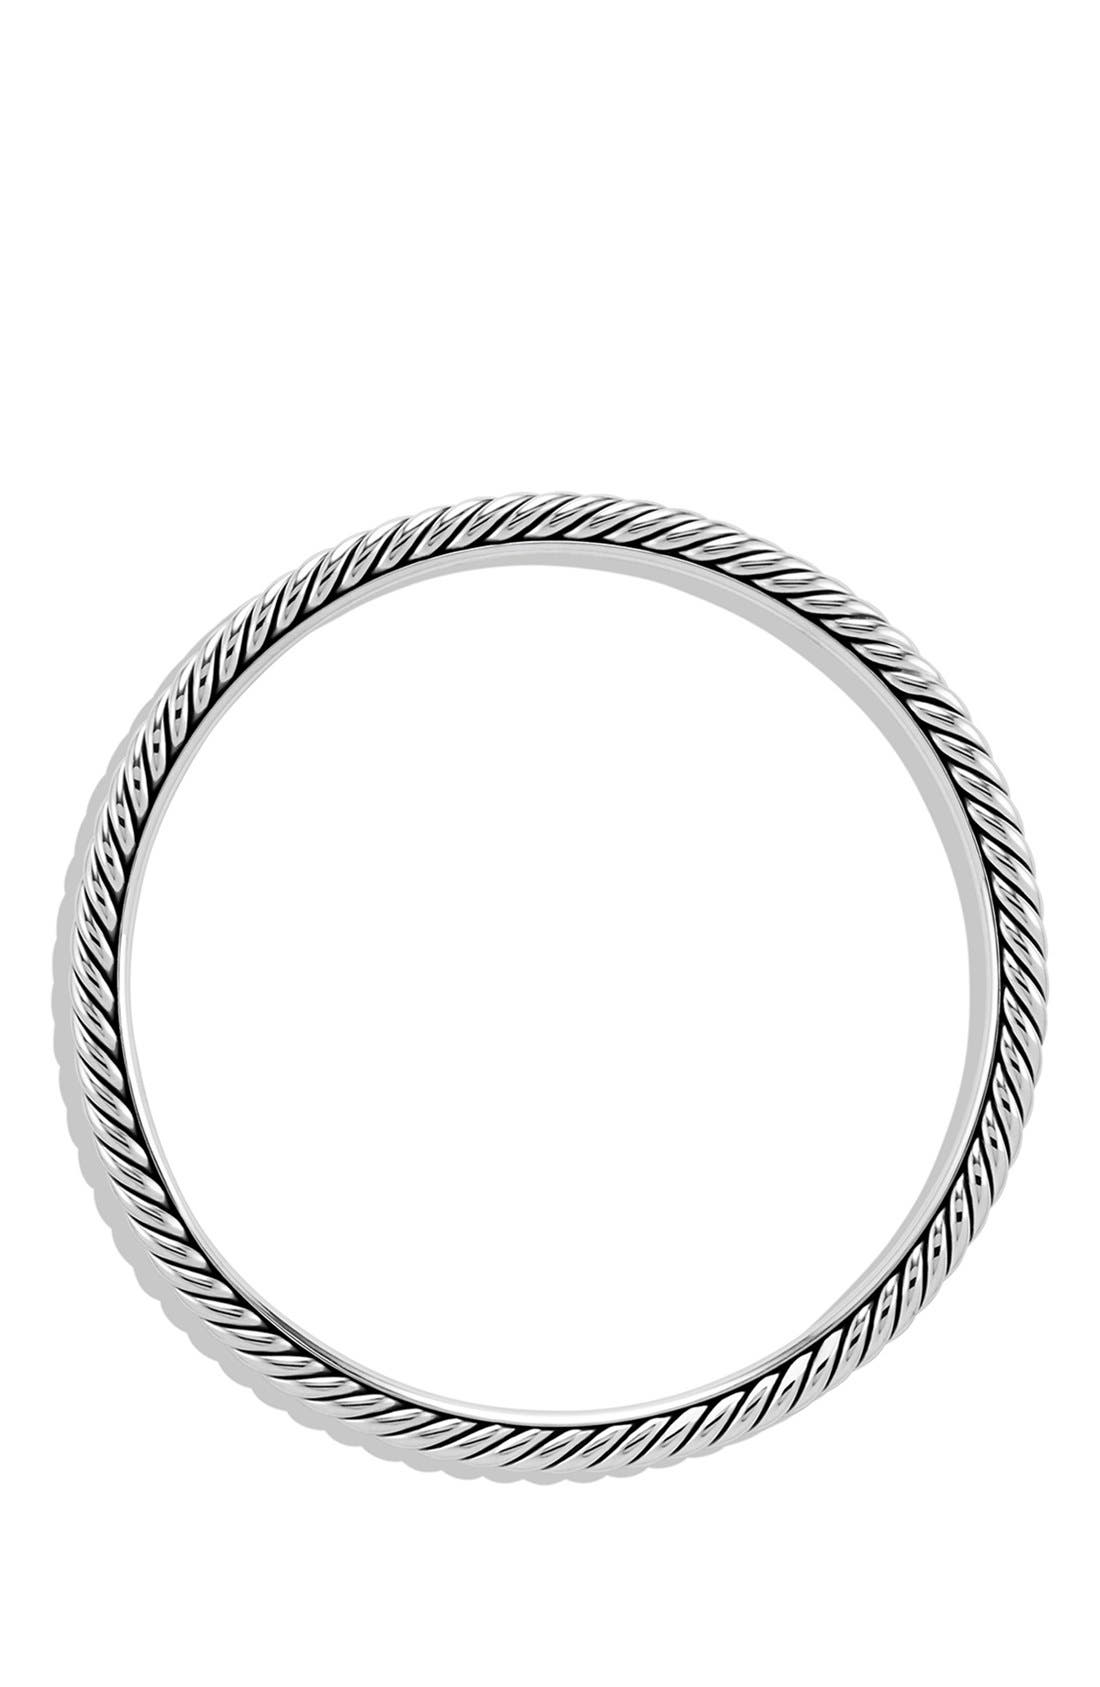 Cable Classics Bangle, 4mm,                             Alternate thumbnail 2, color,                             Silver